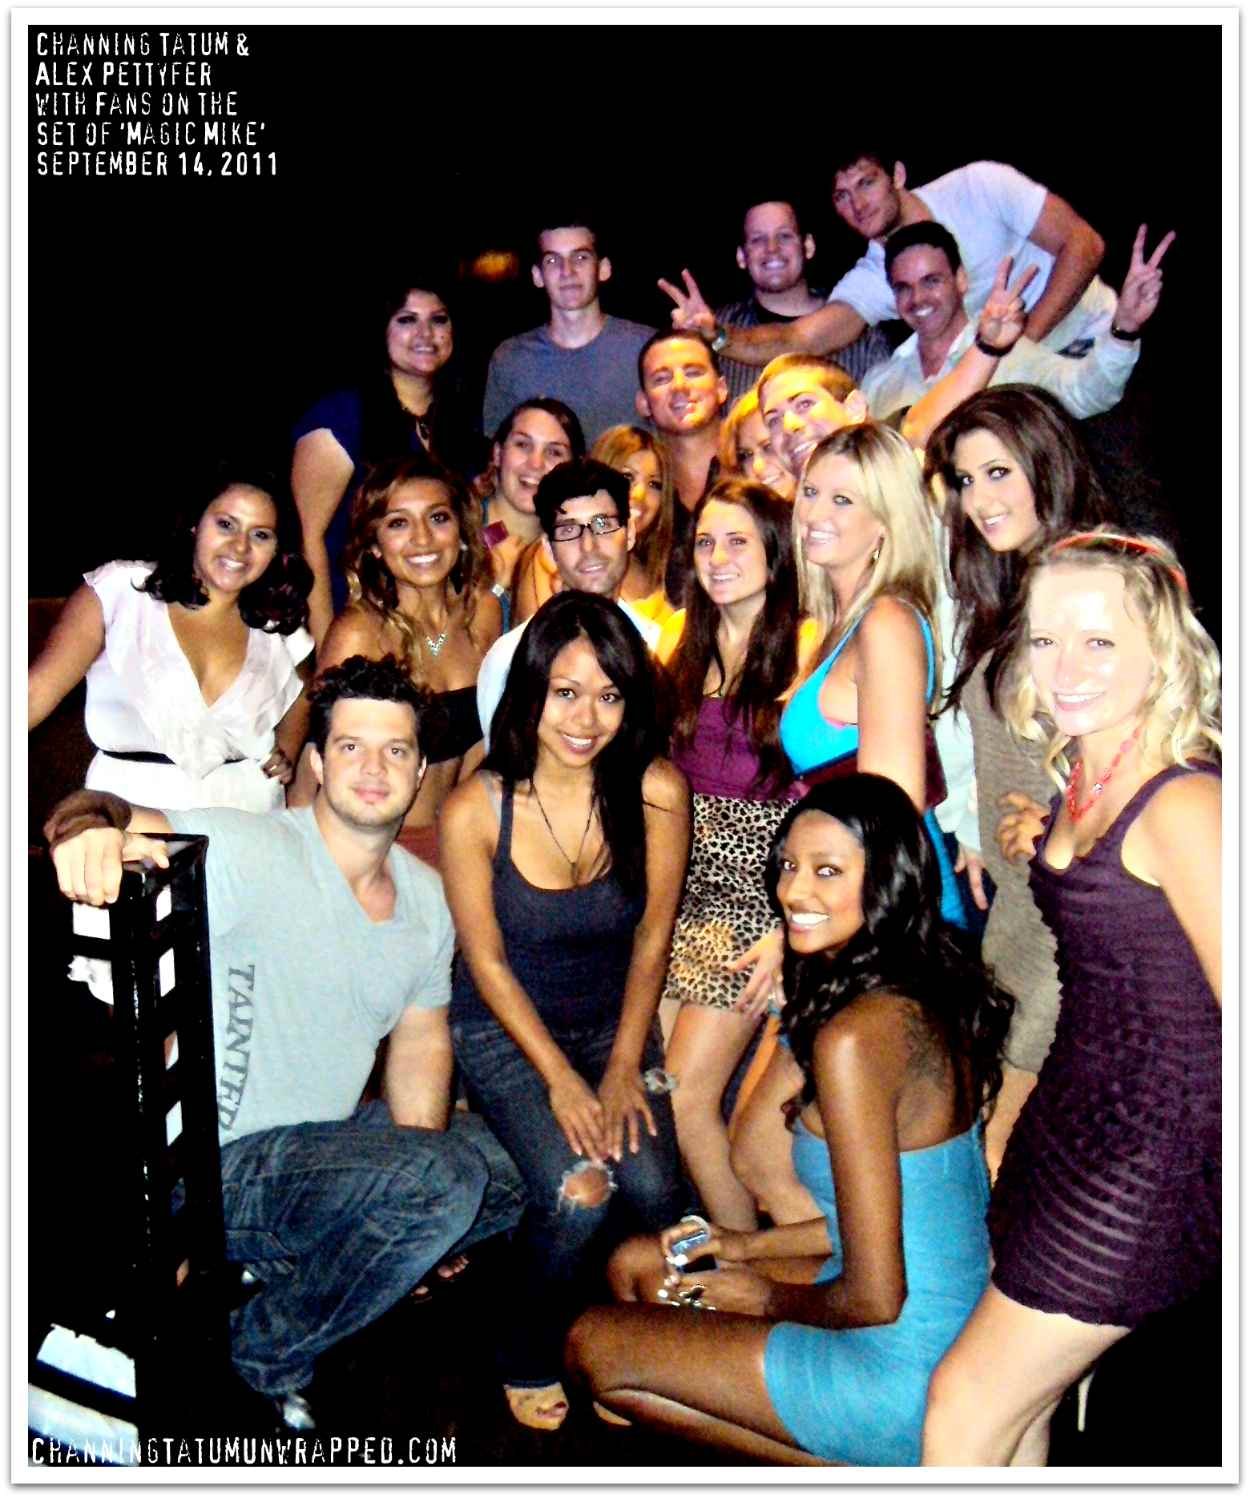 Channing Tatum and Alex Pettyfer with Fans on the Set of 'Magic Mike'